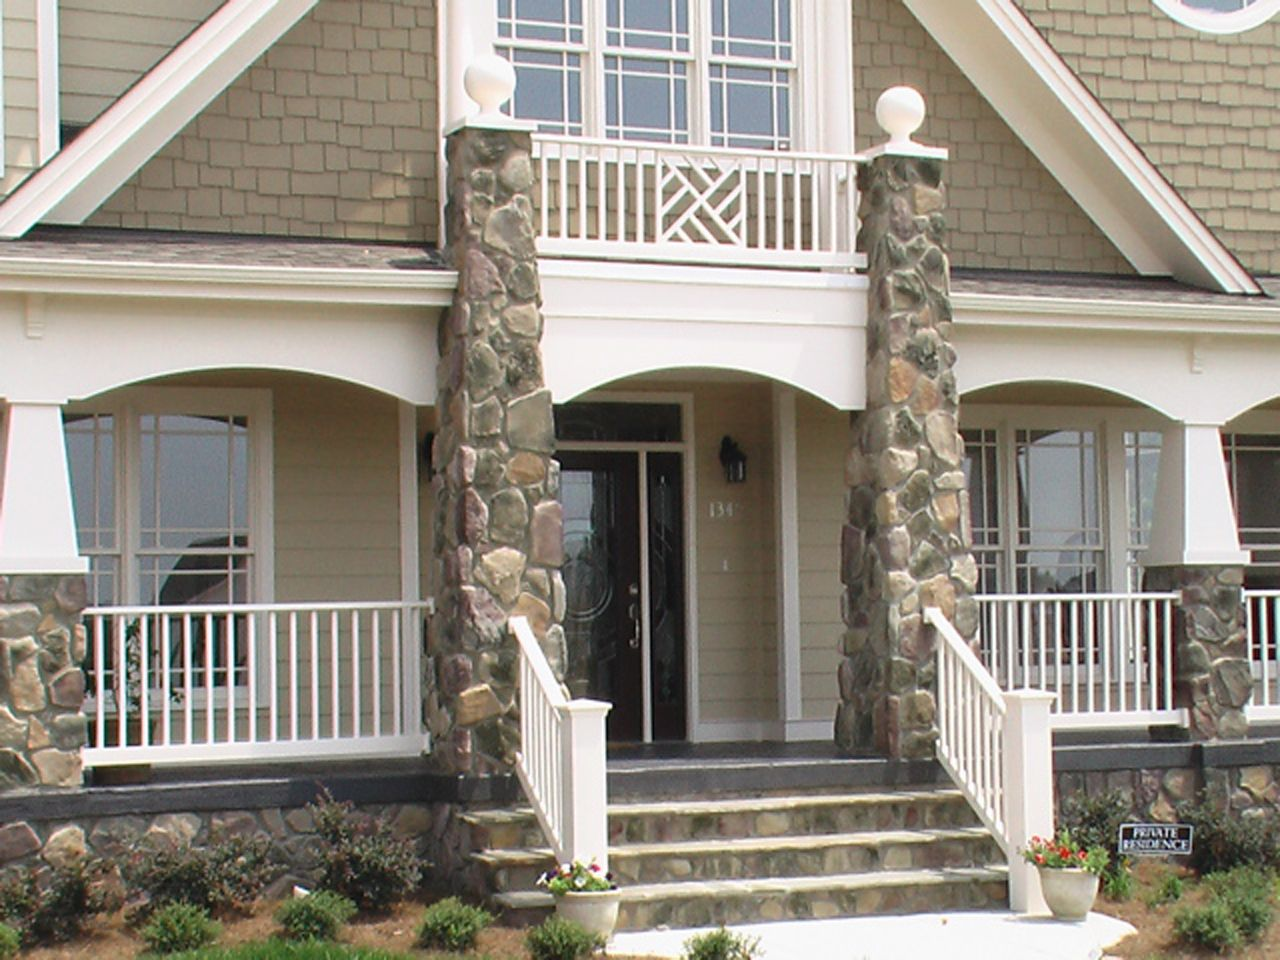 Manufactured Stone Accents From Provia Offer A Final Touch